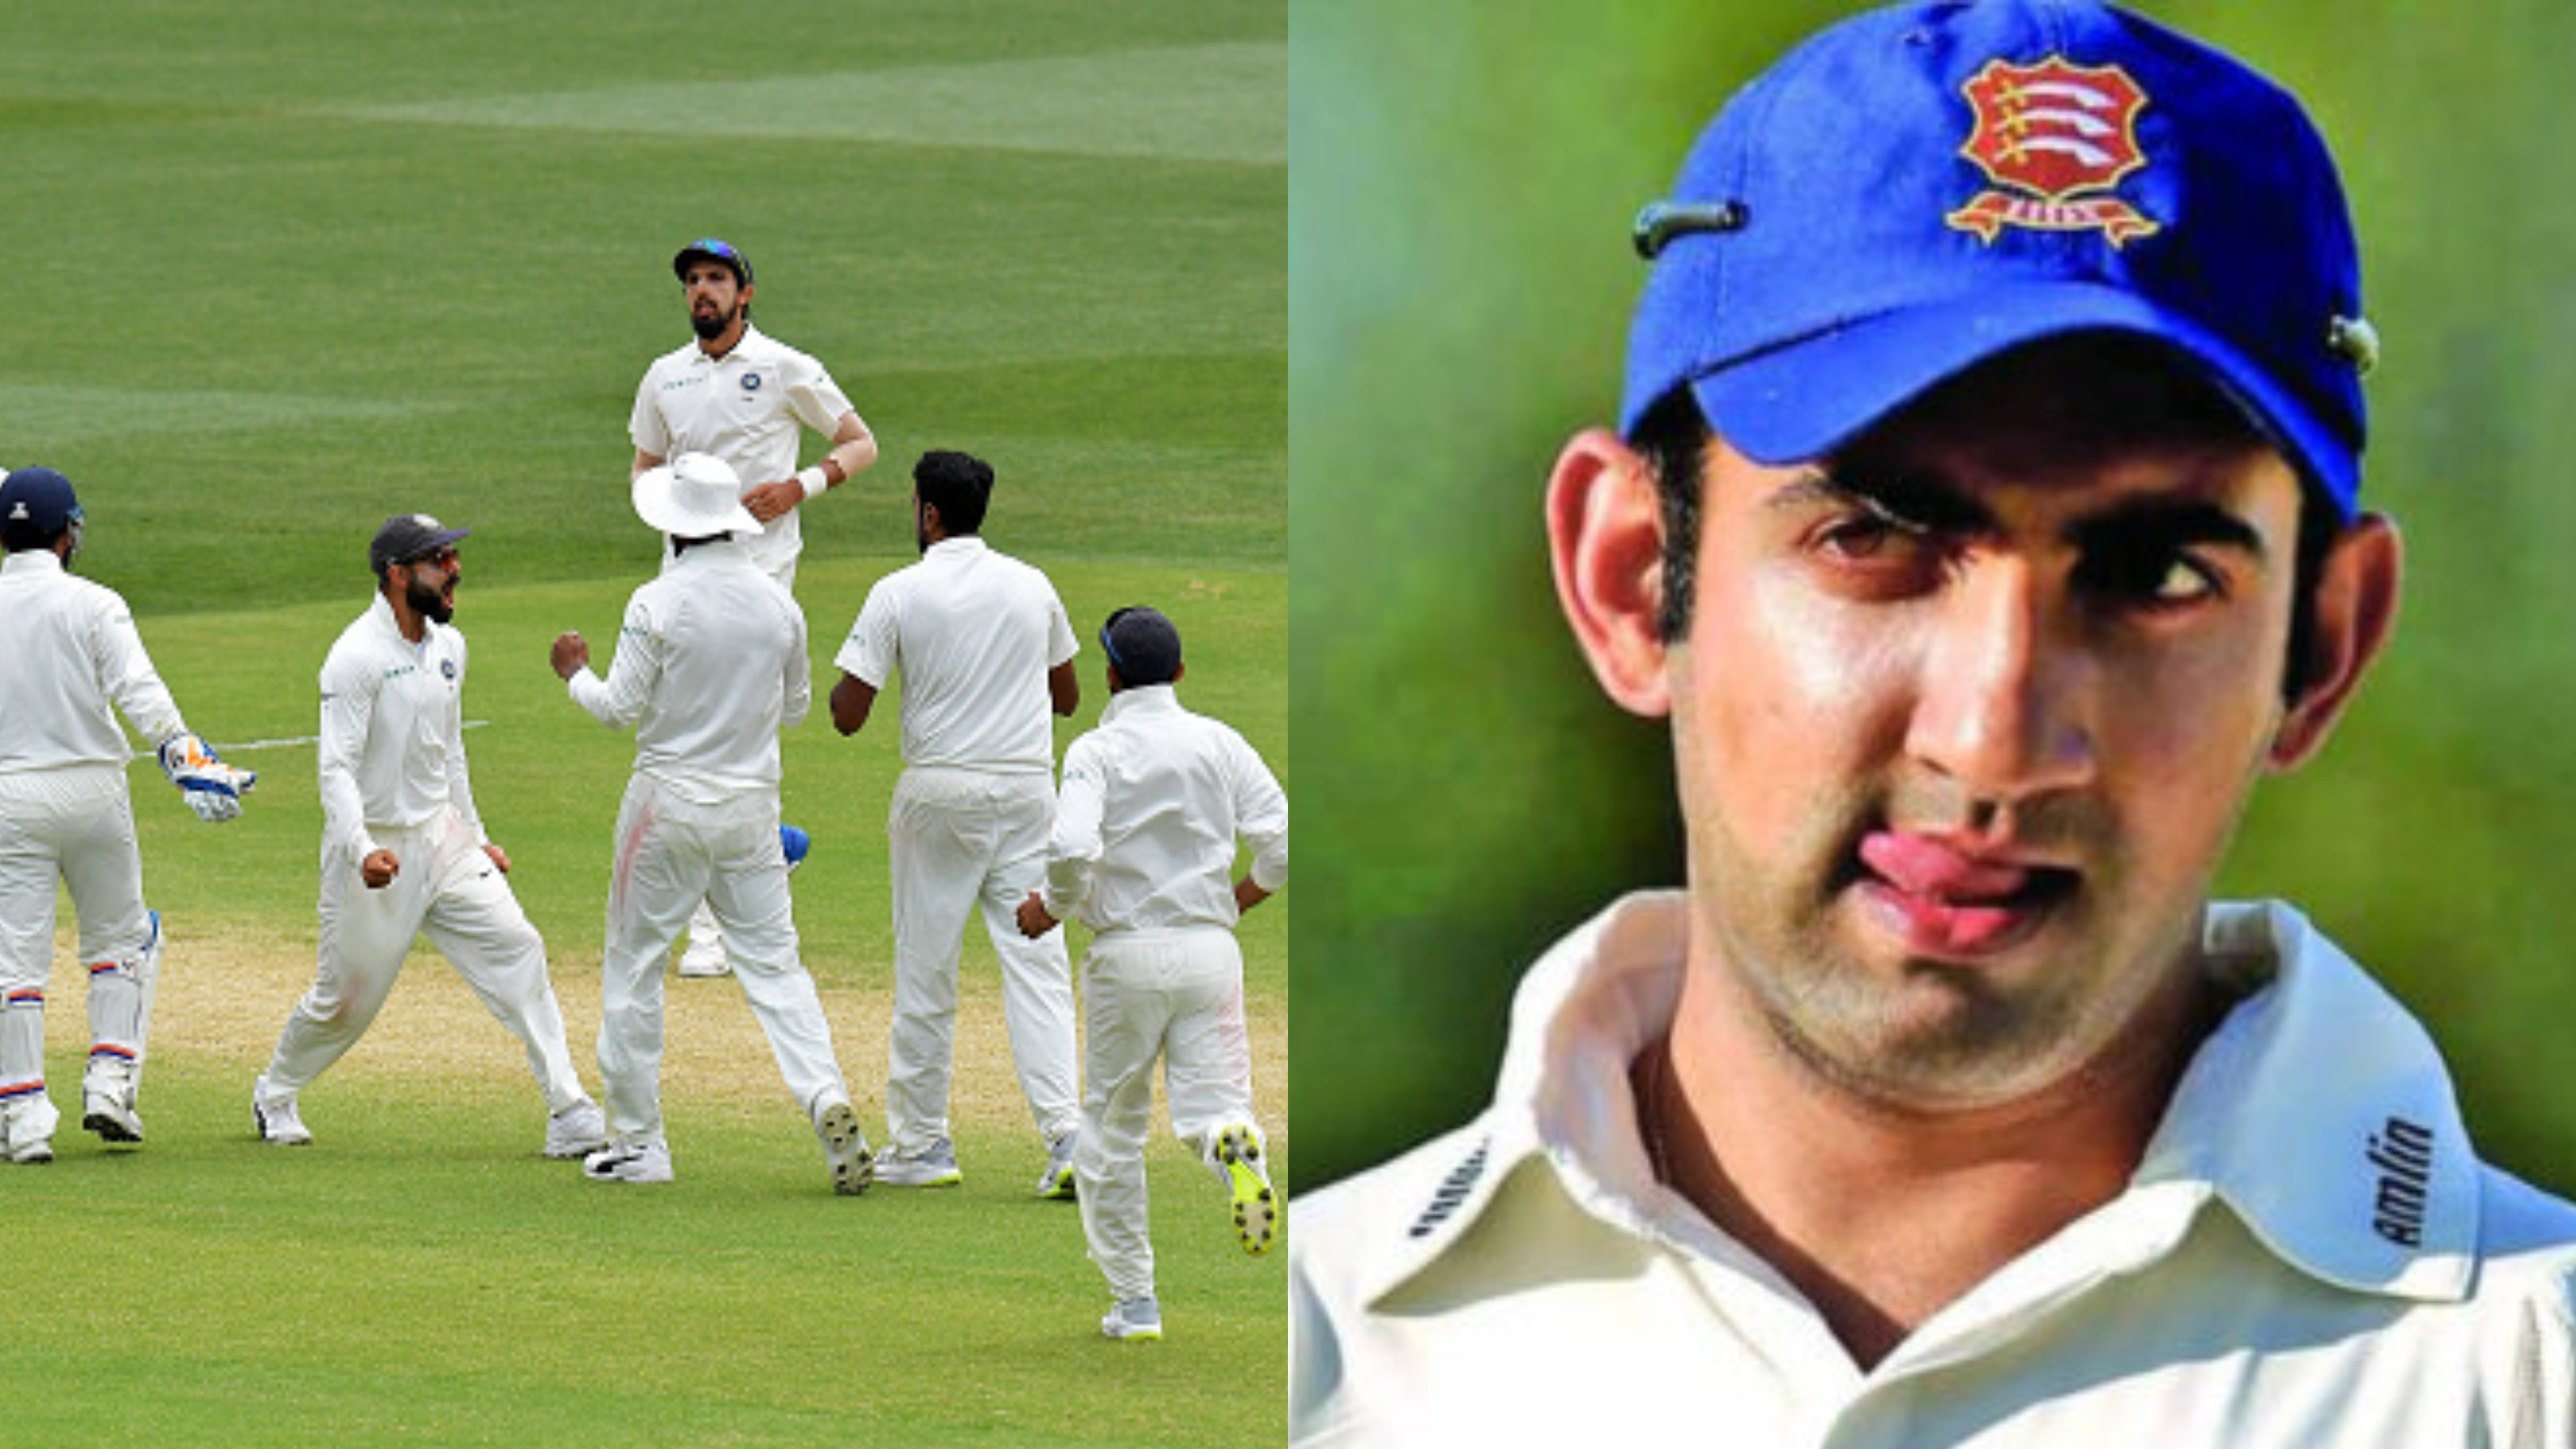 AUS v IND 2018-19: Perth Test going to be an exciting encounter, says Gautam Gambhir